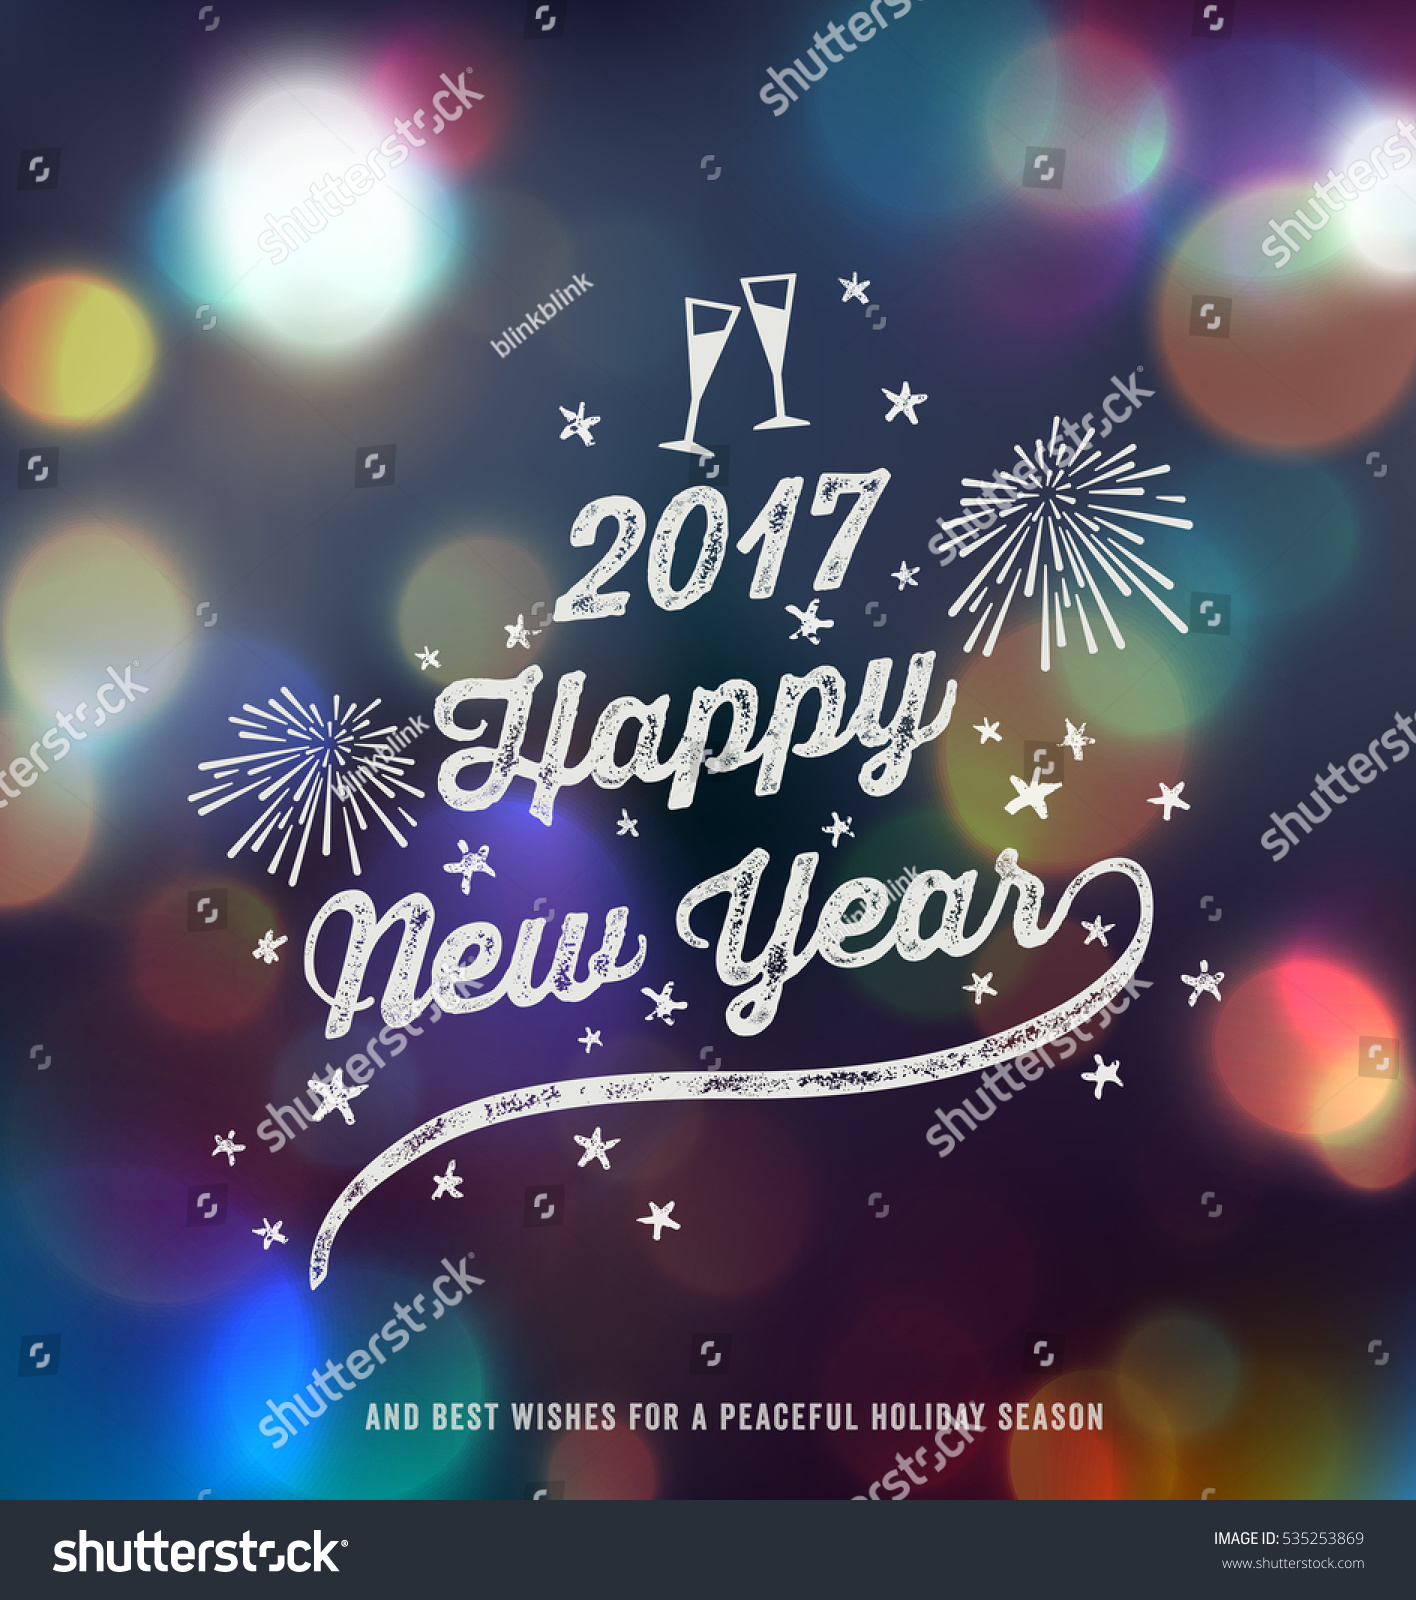 New year greeting card happy new stock vector 535253869 shutterstock new year greeting card happy new year 2017 handwritten typography over blurred background kristyandbryce Images